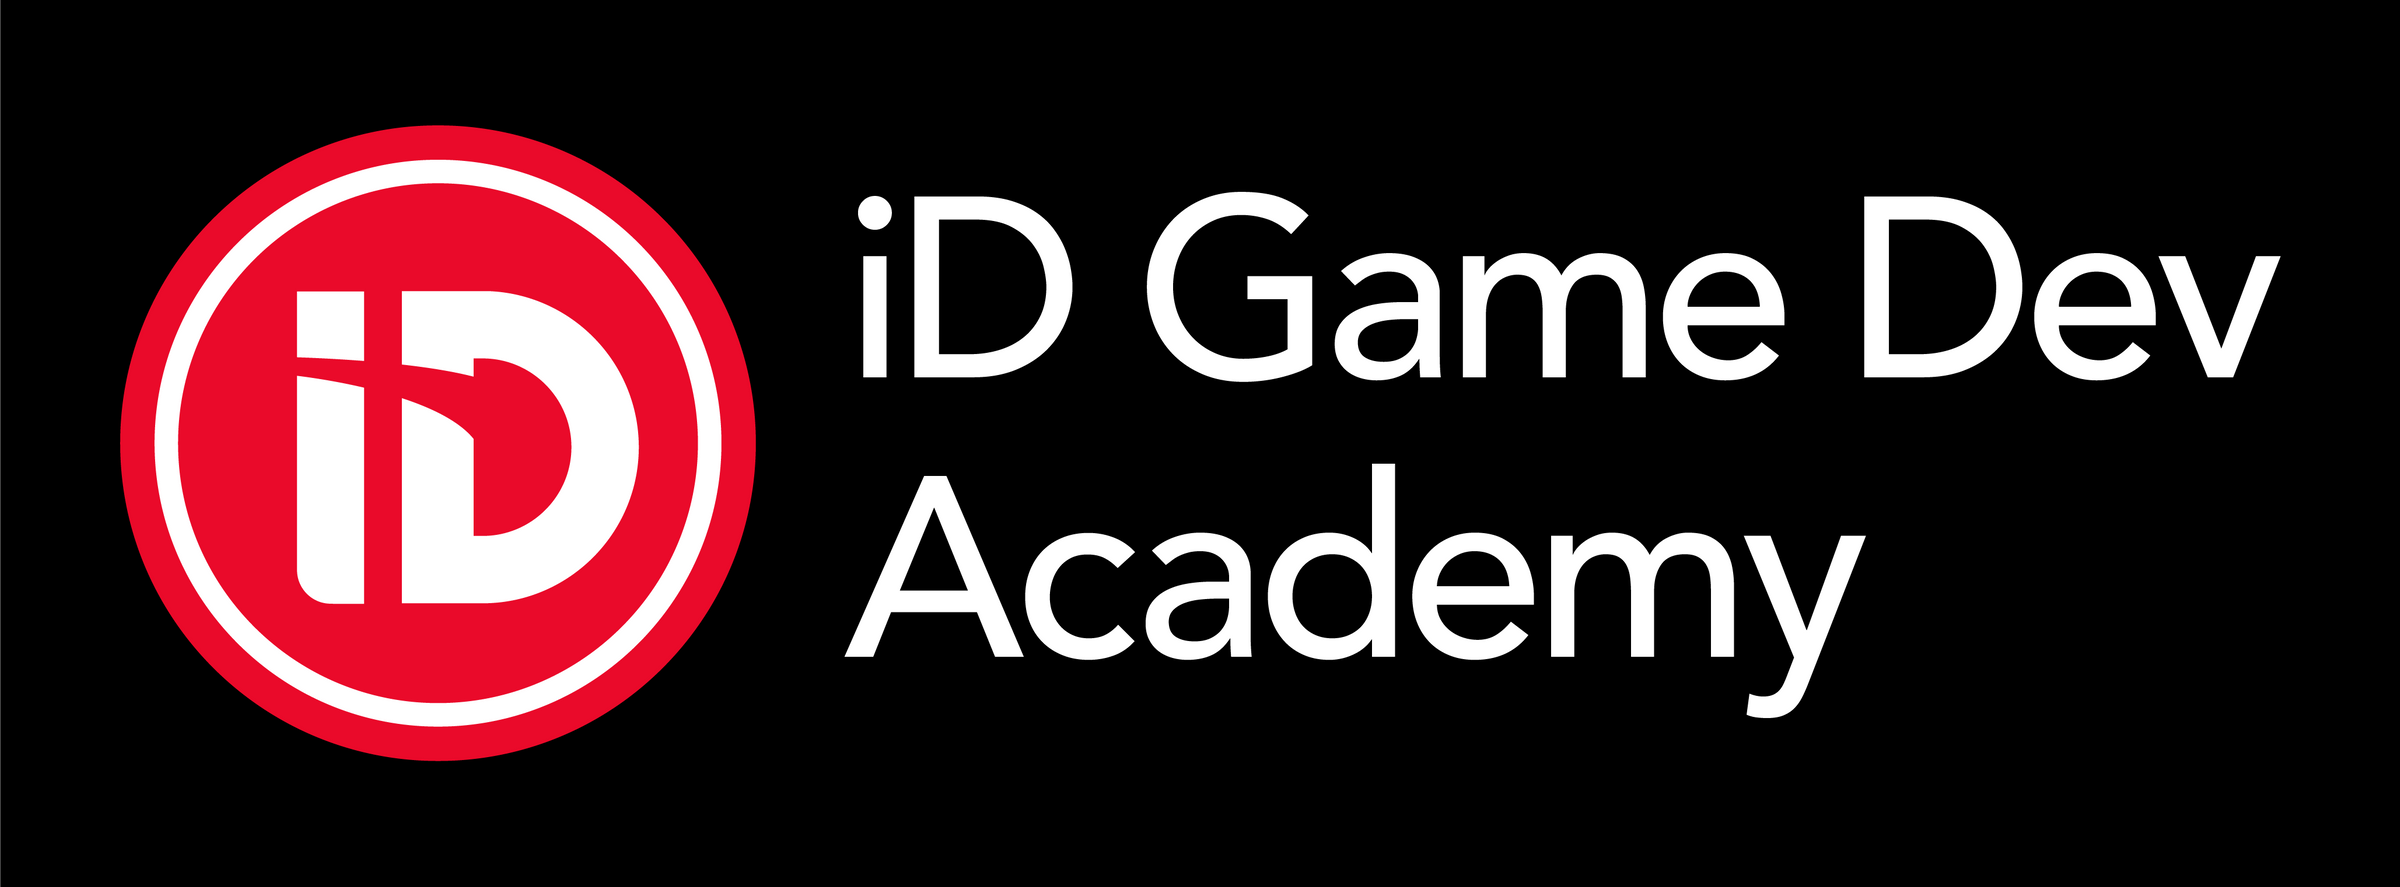 iD Game Dev Academy for Teens - Held at University of Washington - Seattle